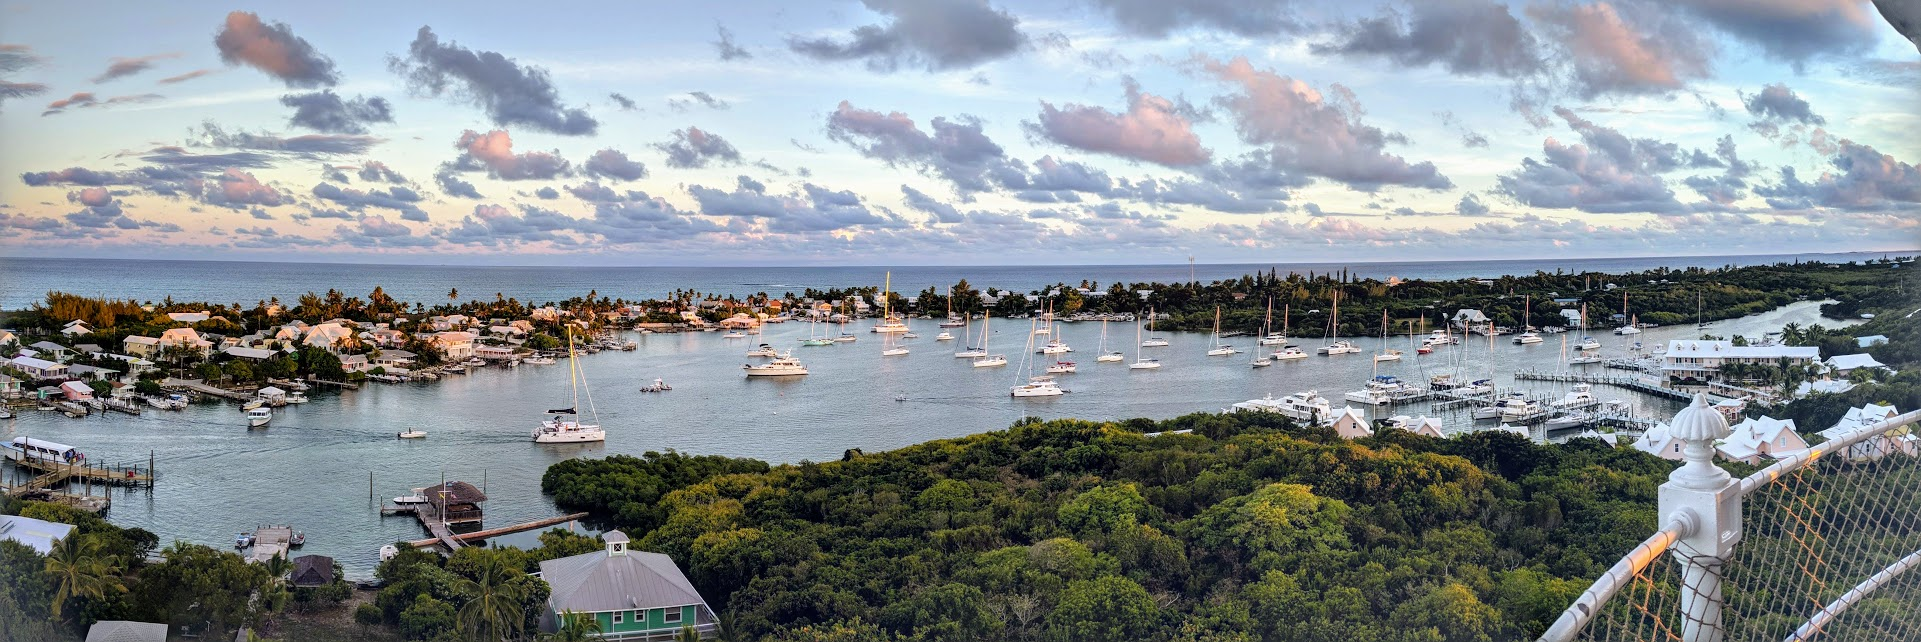 A Bahamian harbor view from the lighthouse